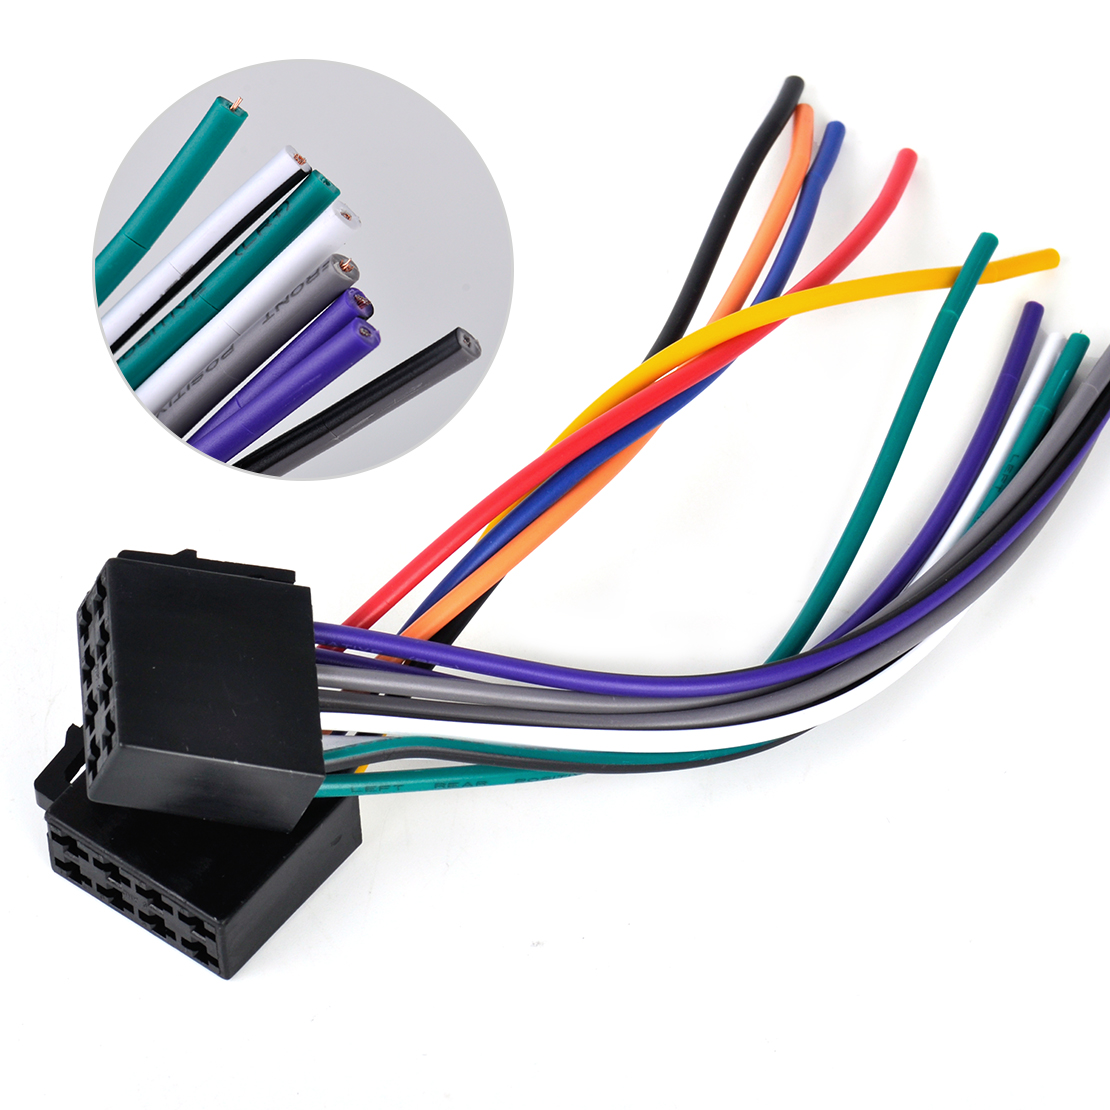 1 universal car stereo radio female iso plug adapter wiring harness universal wiring harness connector at mifinder.co